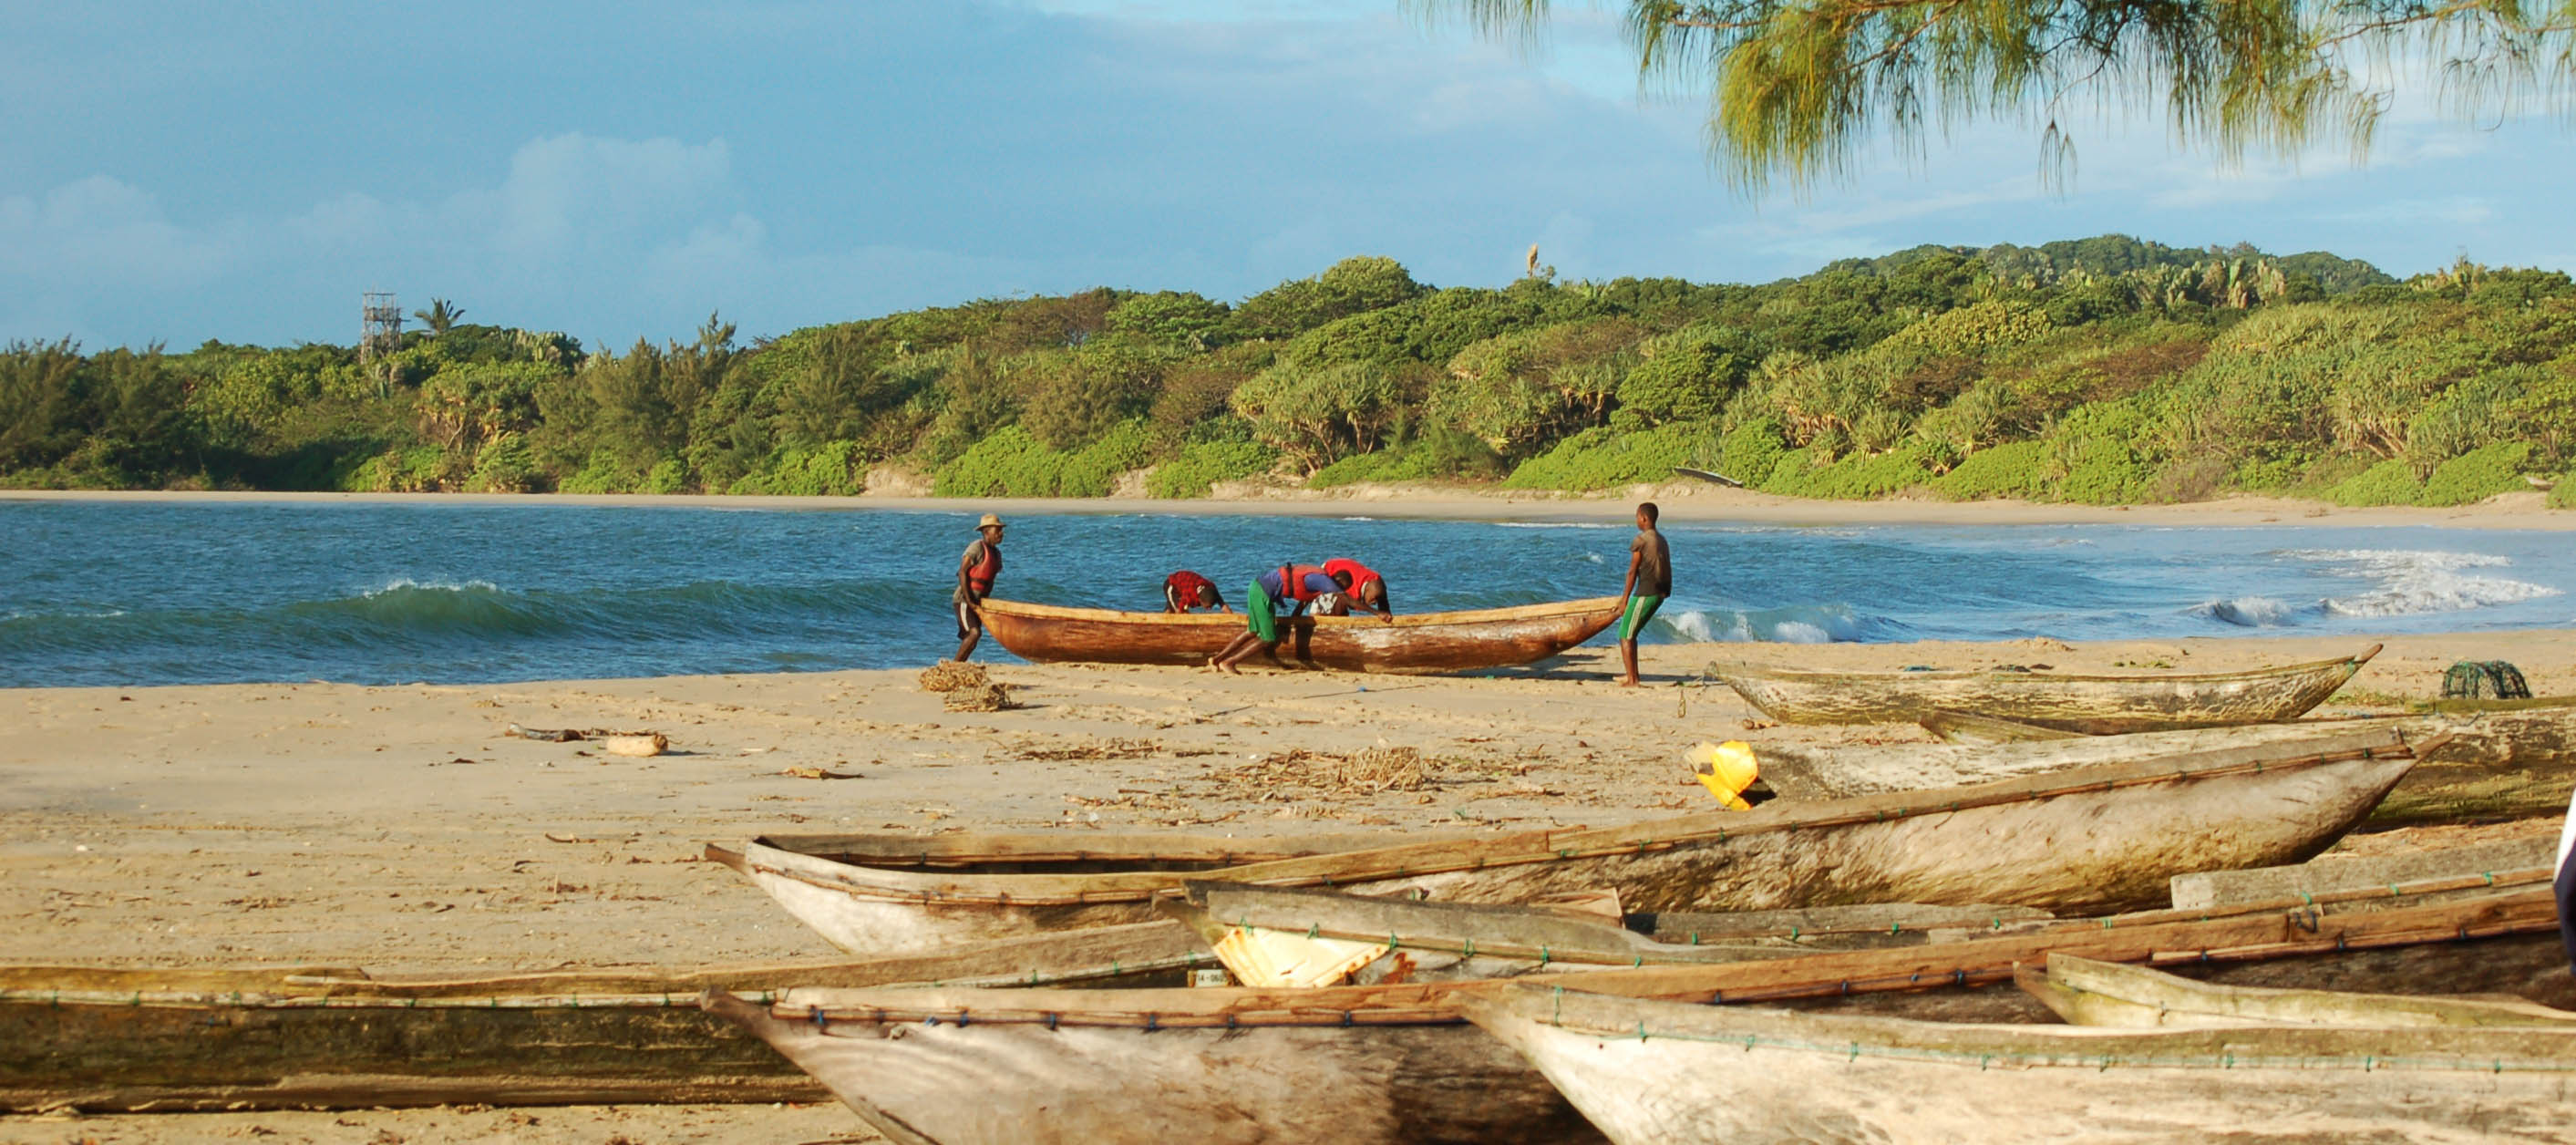 Fishermen push a wooden pirogue into the sea